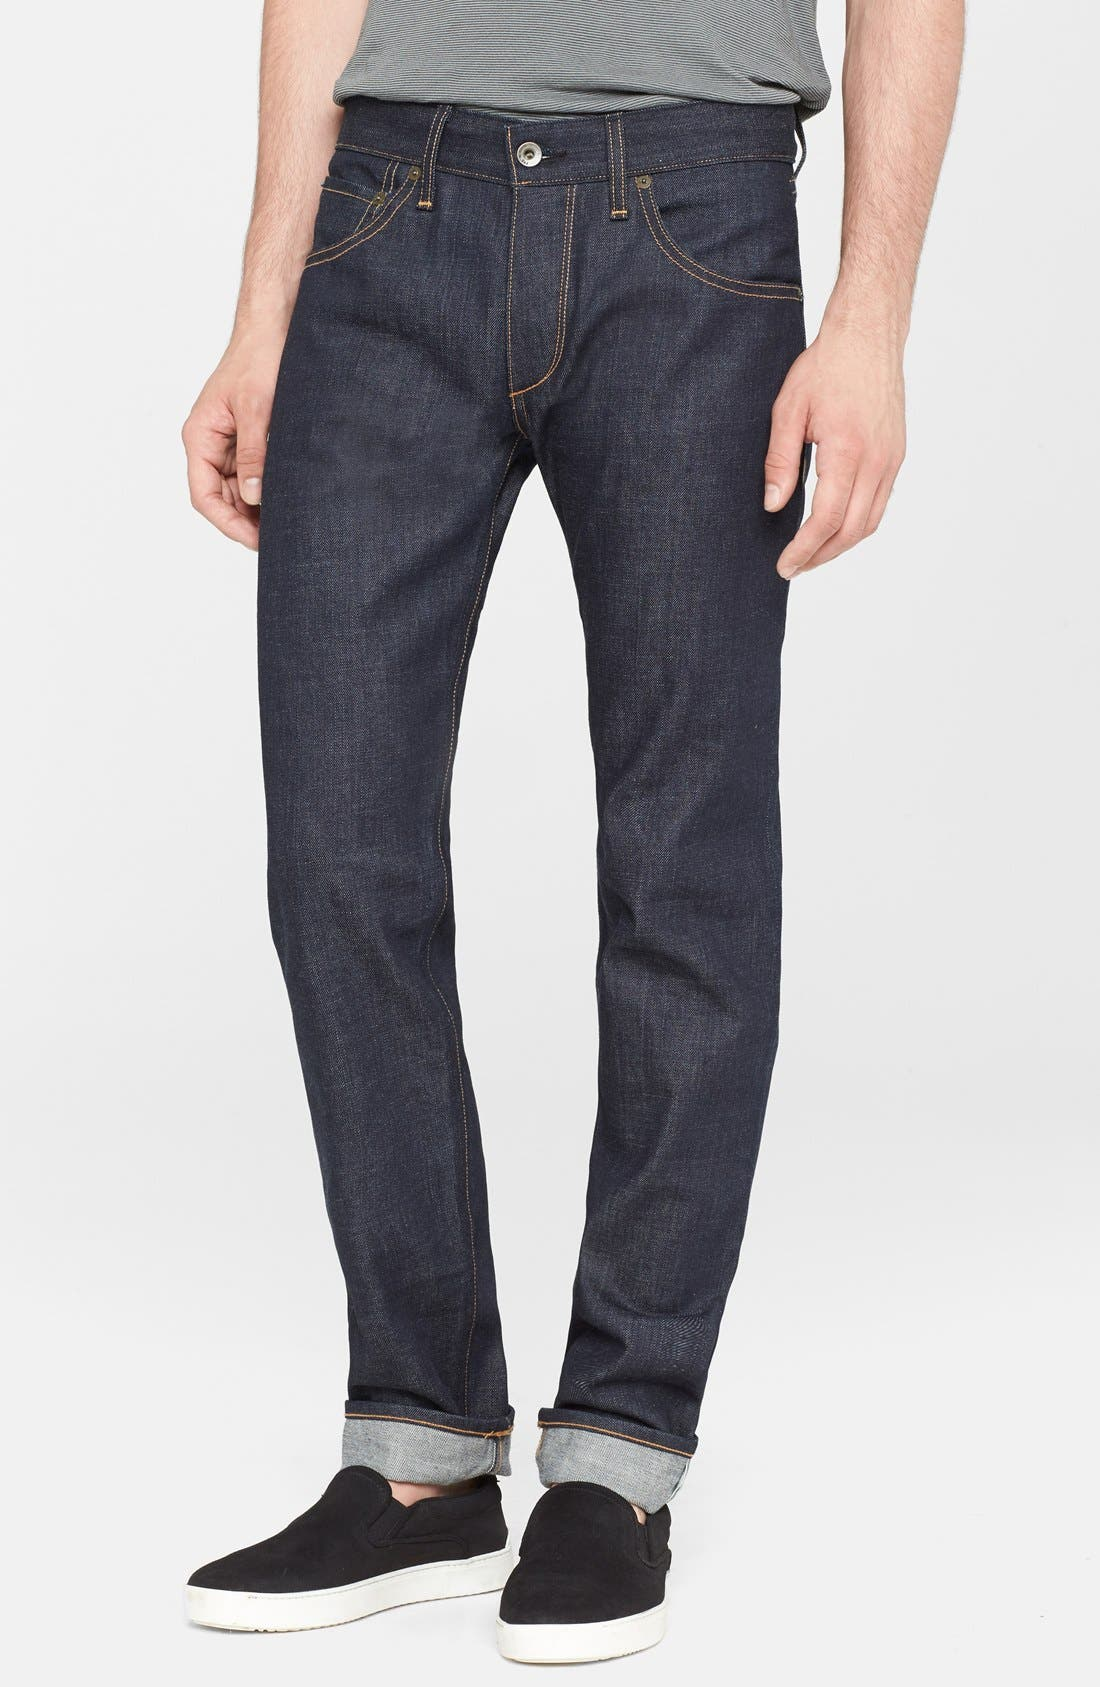 rag & bone Standard Issue Fit 2 Slim Fit Raw Selvedge Jeans (Indigo)